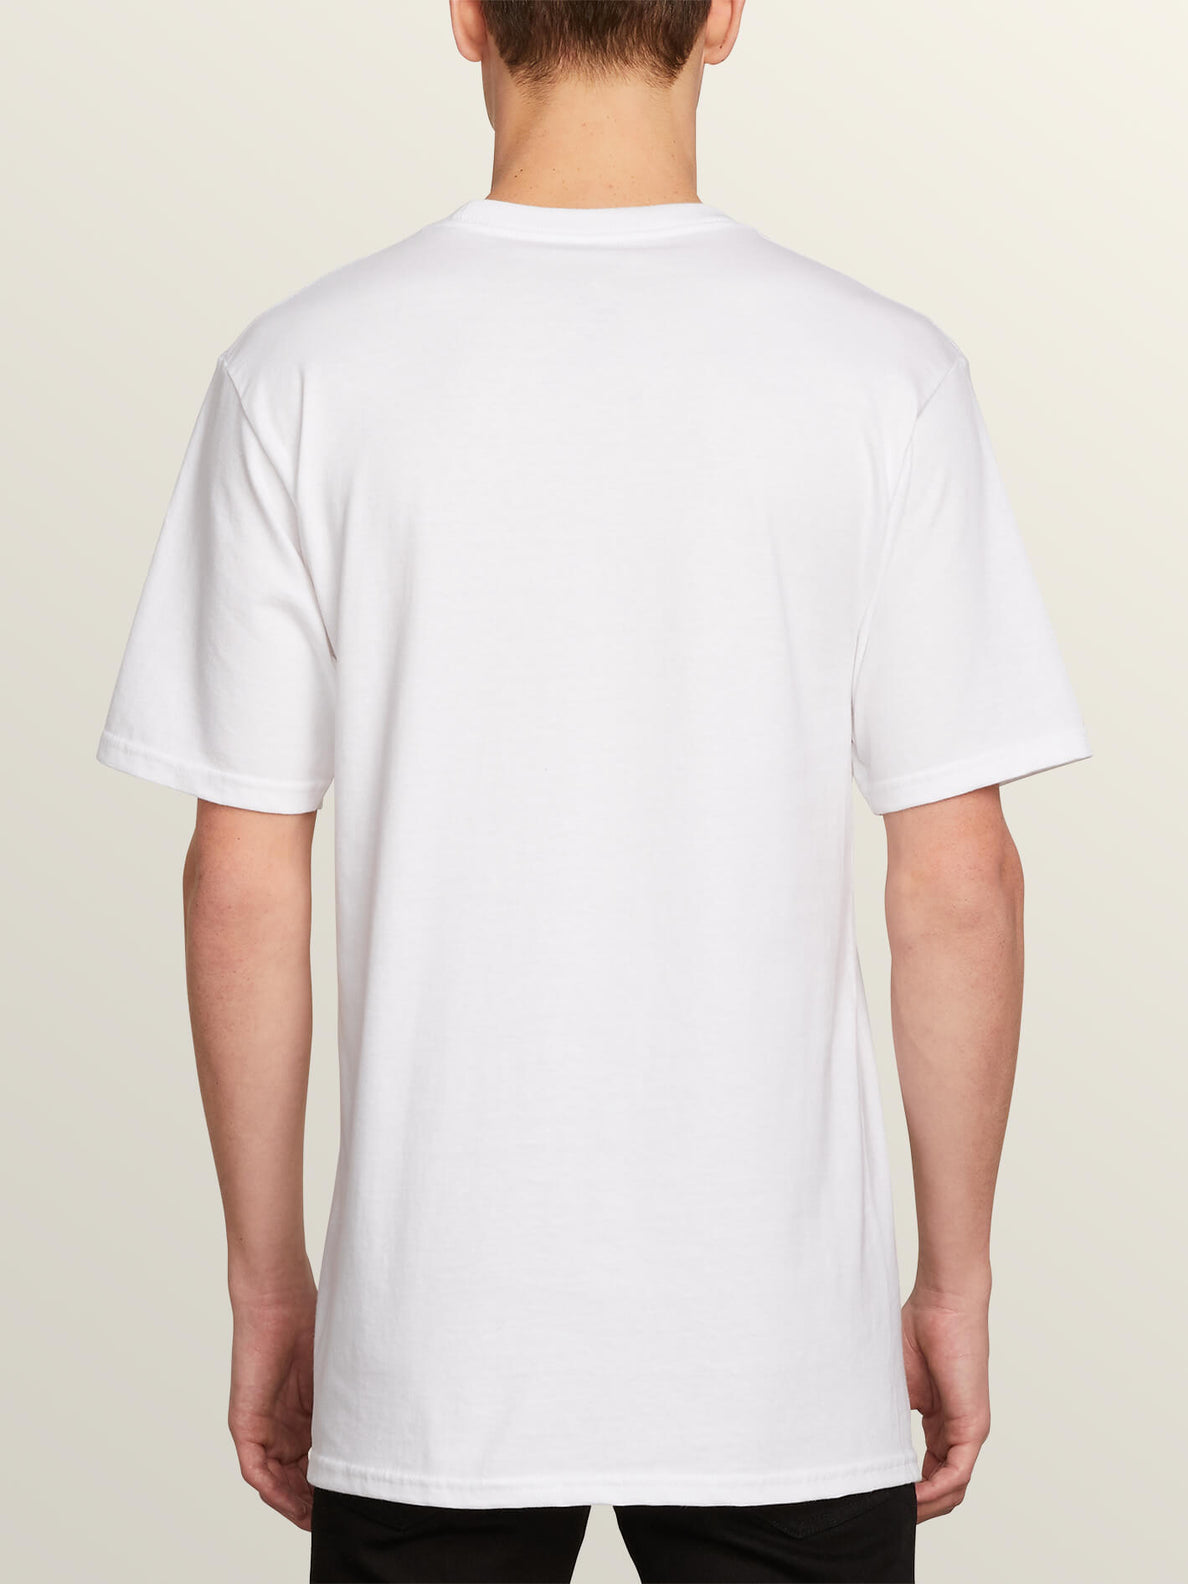 Post It Cali Short Sleeve Tee In White, Back View